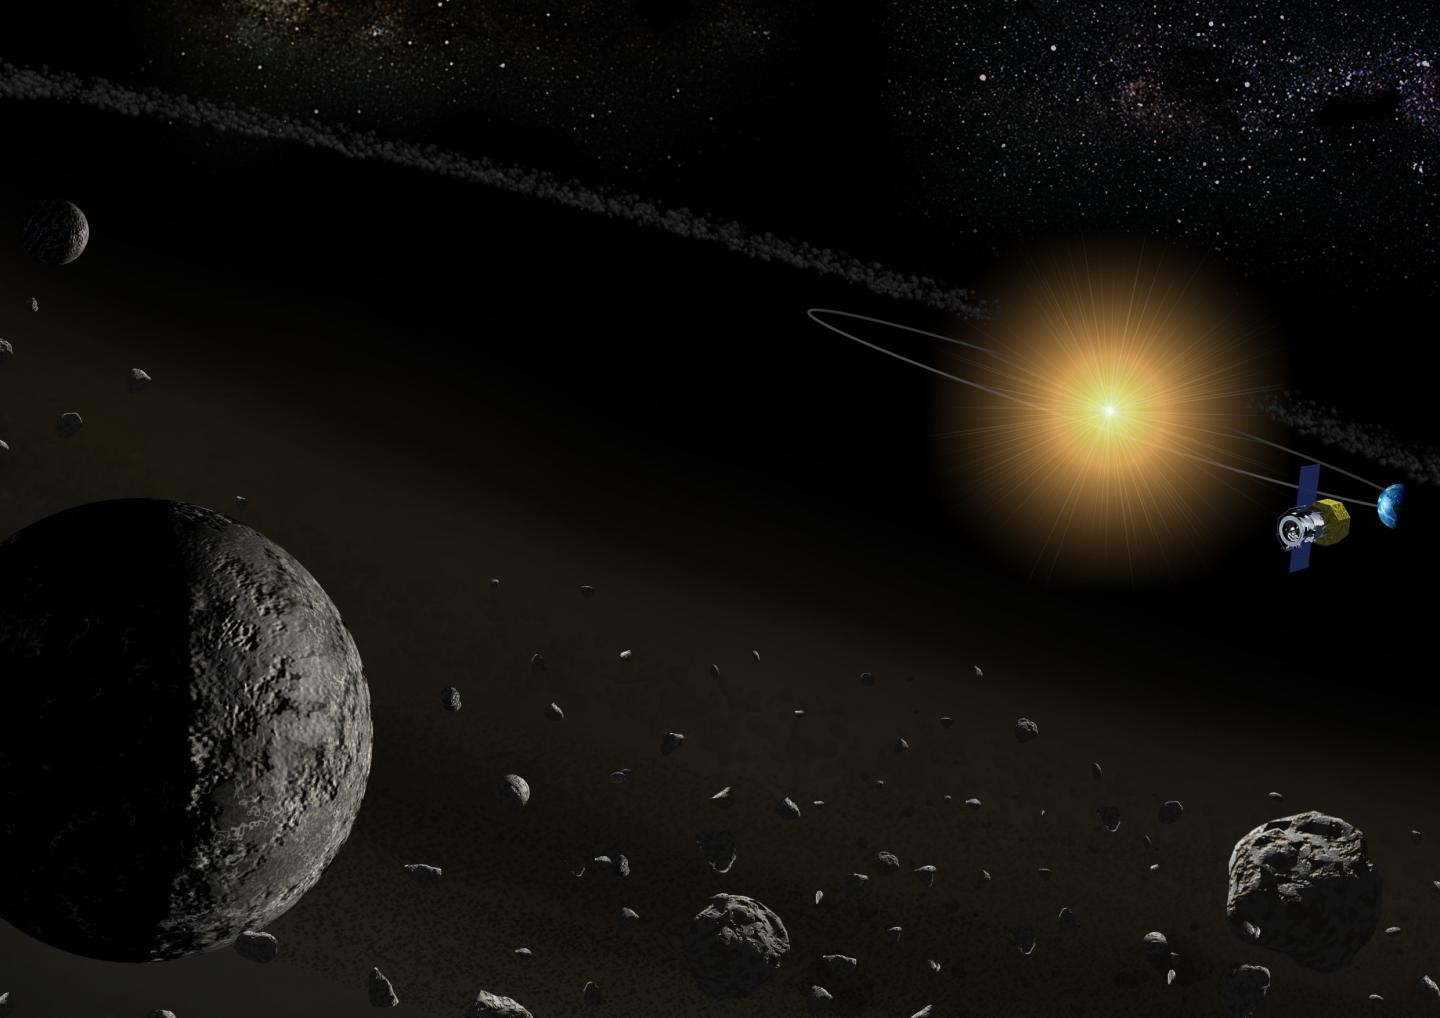 Figure 1: An Artist's Illustration of the Near-infrared Spectroscopic Observation of Asteroids